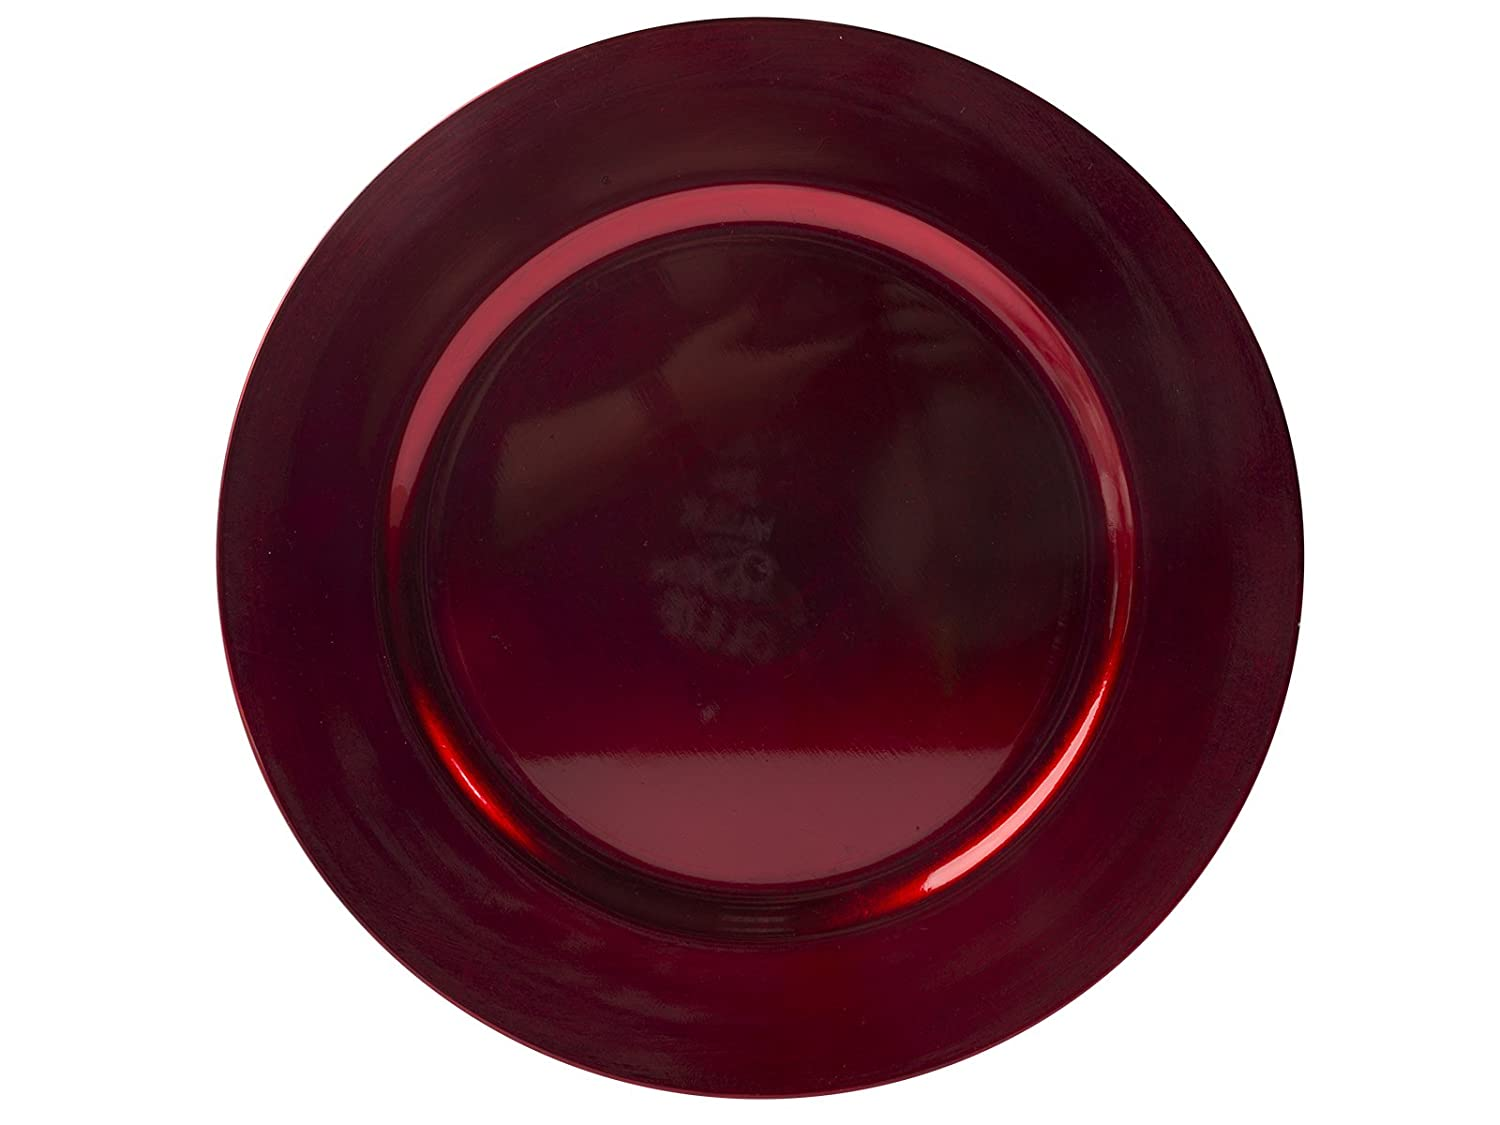 Creative Tops Creative Christmas Red Lacquer Charger Plate, 33 cm (13) 33 cm (13) 5189774